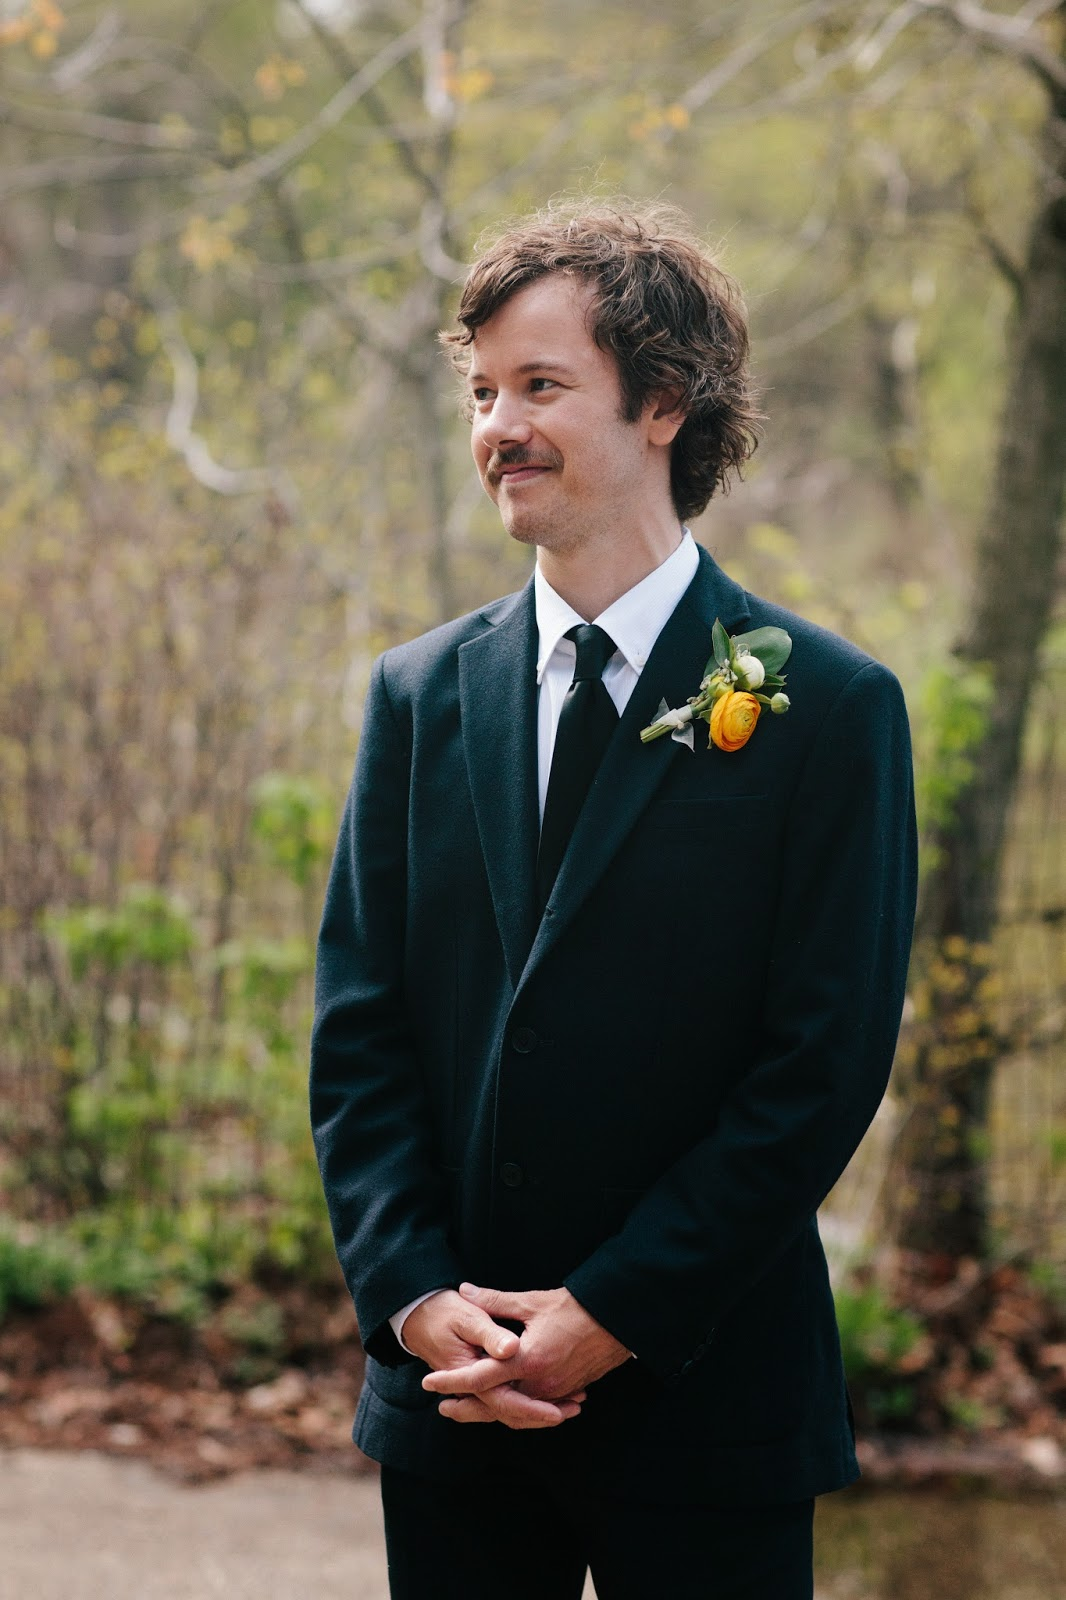 groom in a navy suit and black tie with a yellow ranunculus spring boutonniere